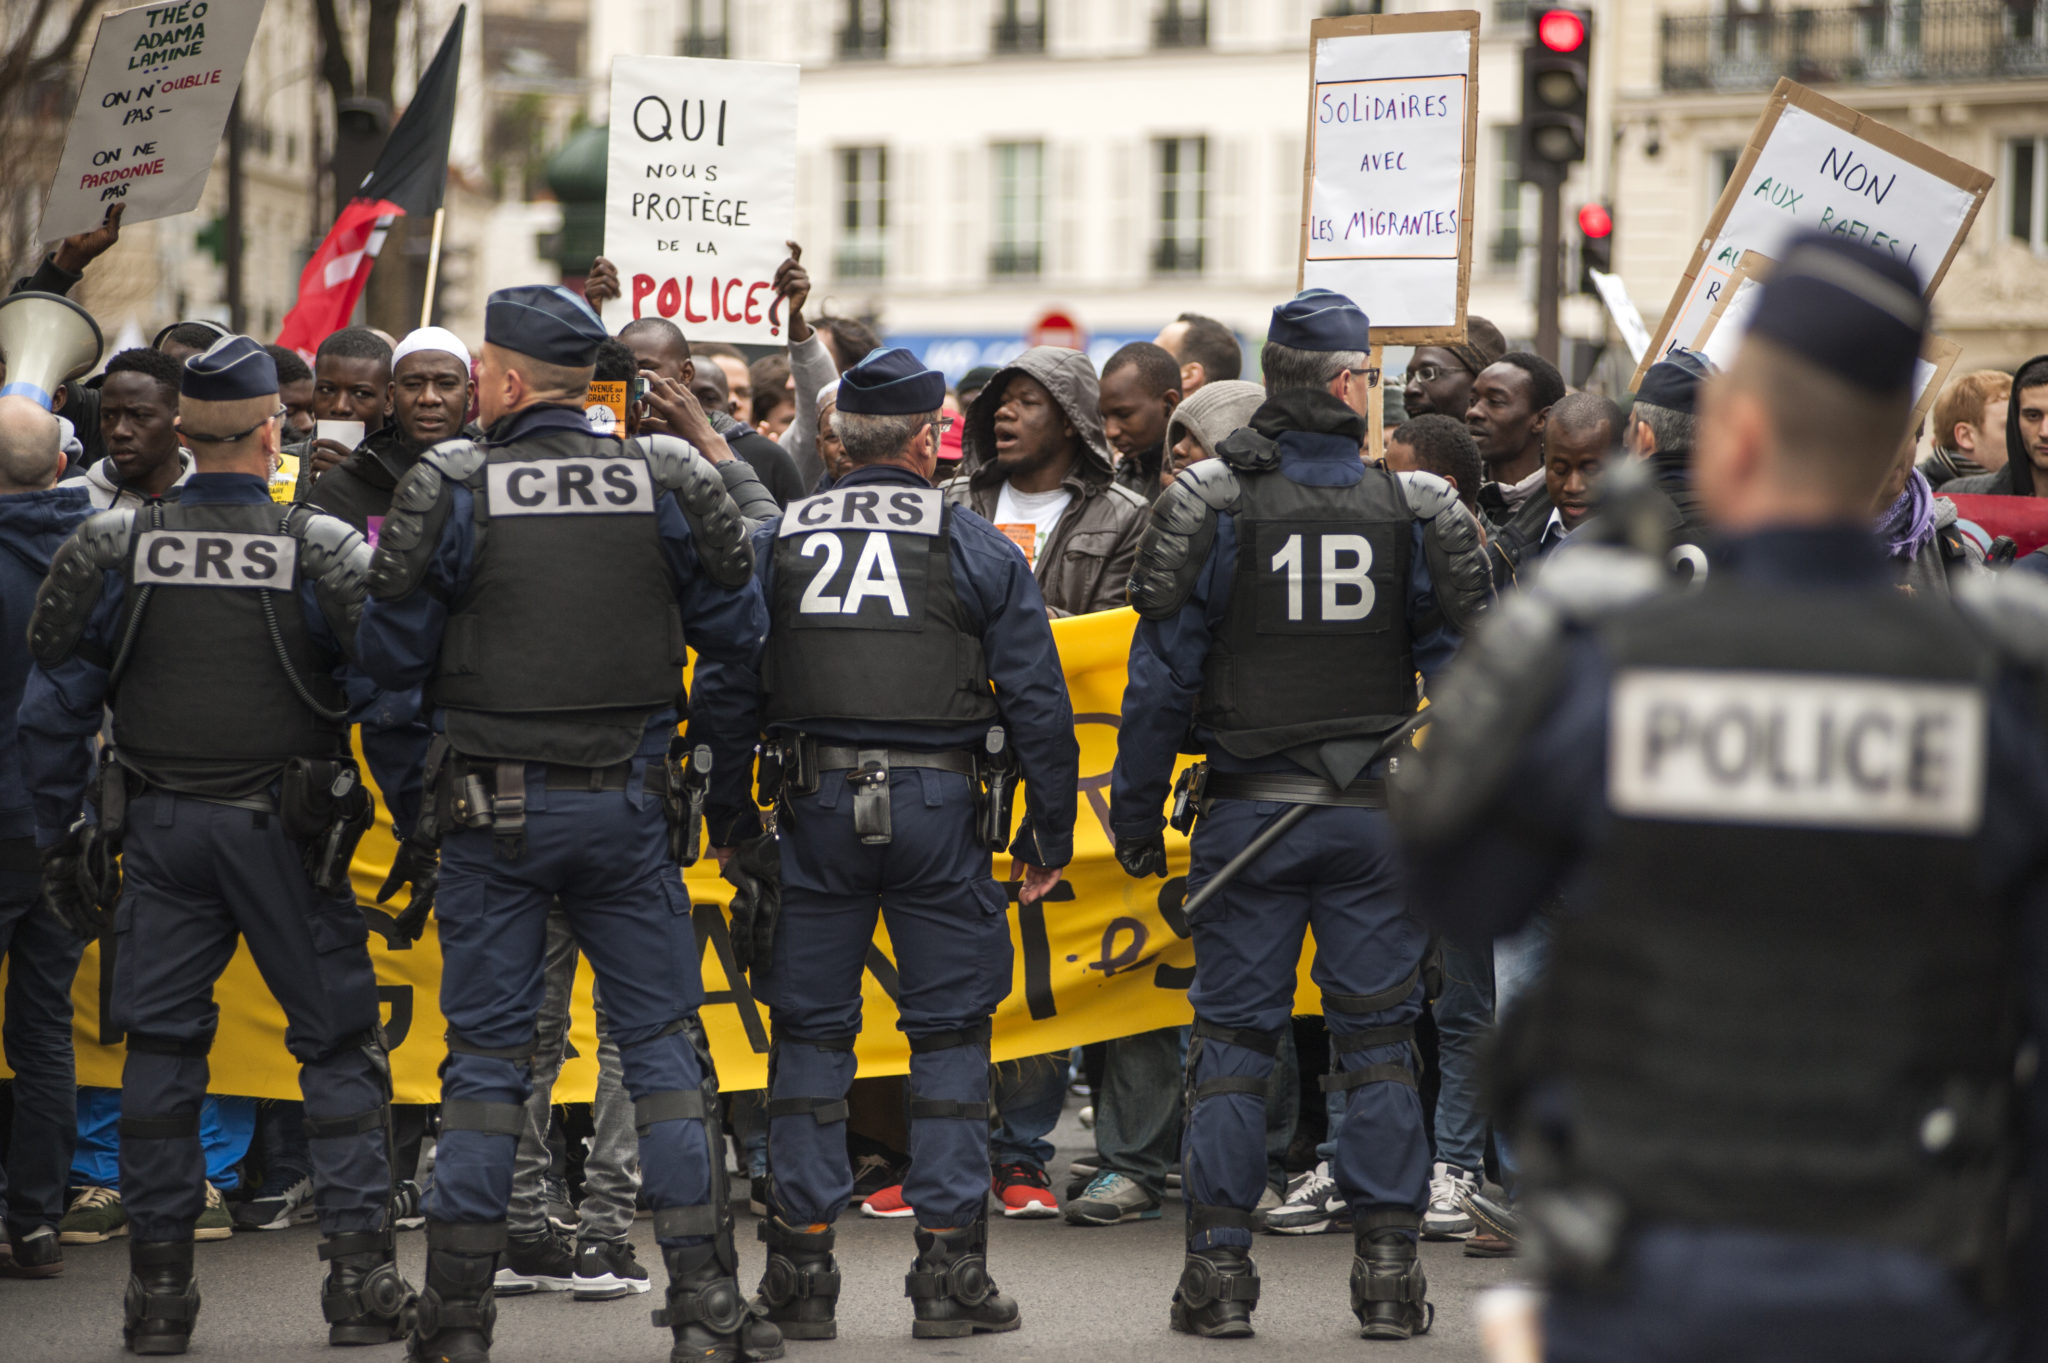 A right not a threat: Disproportionate restrictions on demonstrations under the State of Emergency in France